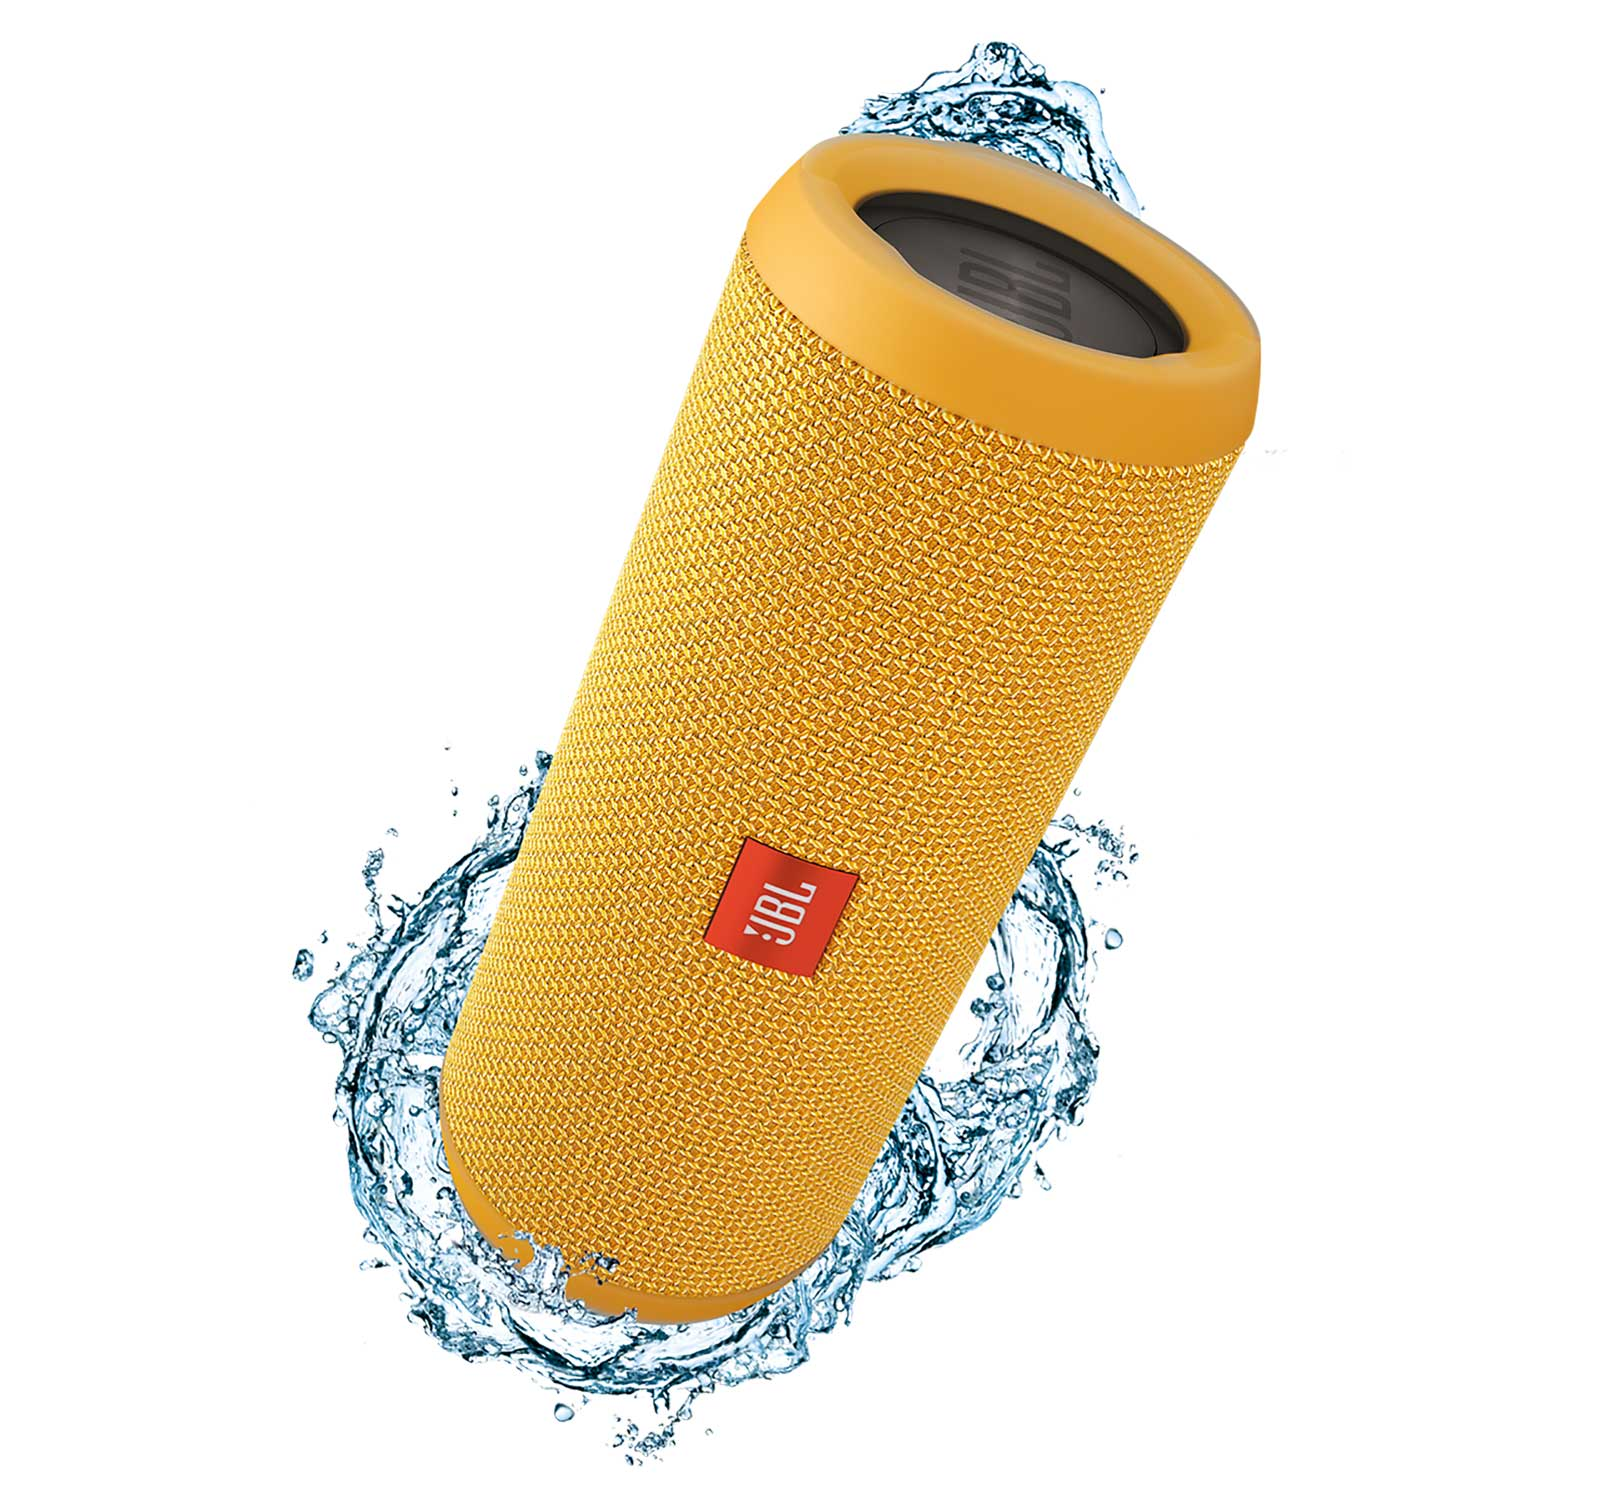 JBL Flip 3 Yellow Open Box Splashproof Bluetooth Speaker